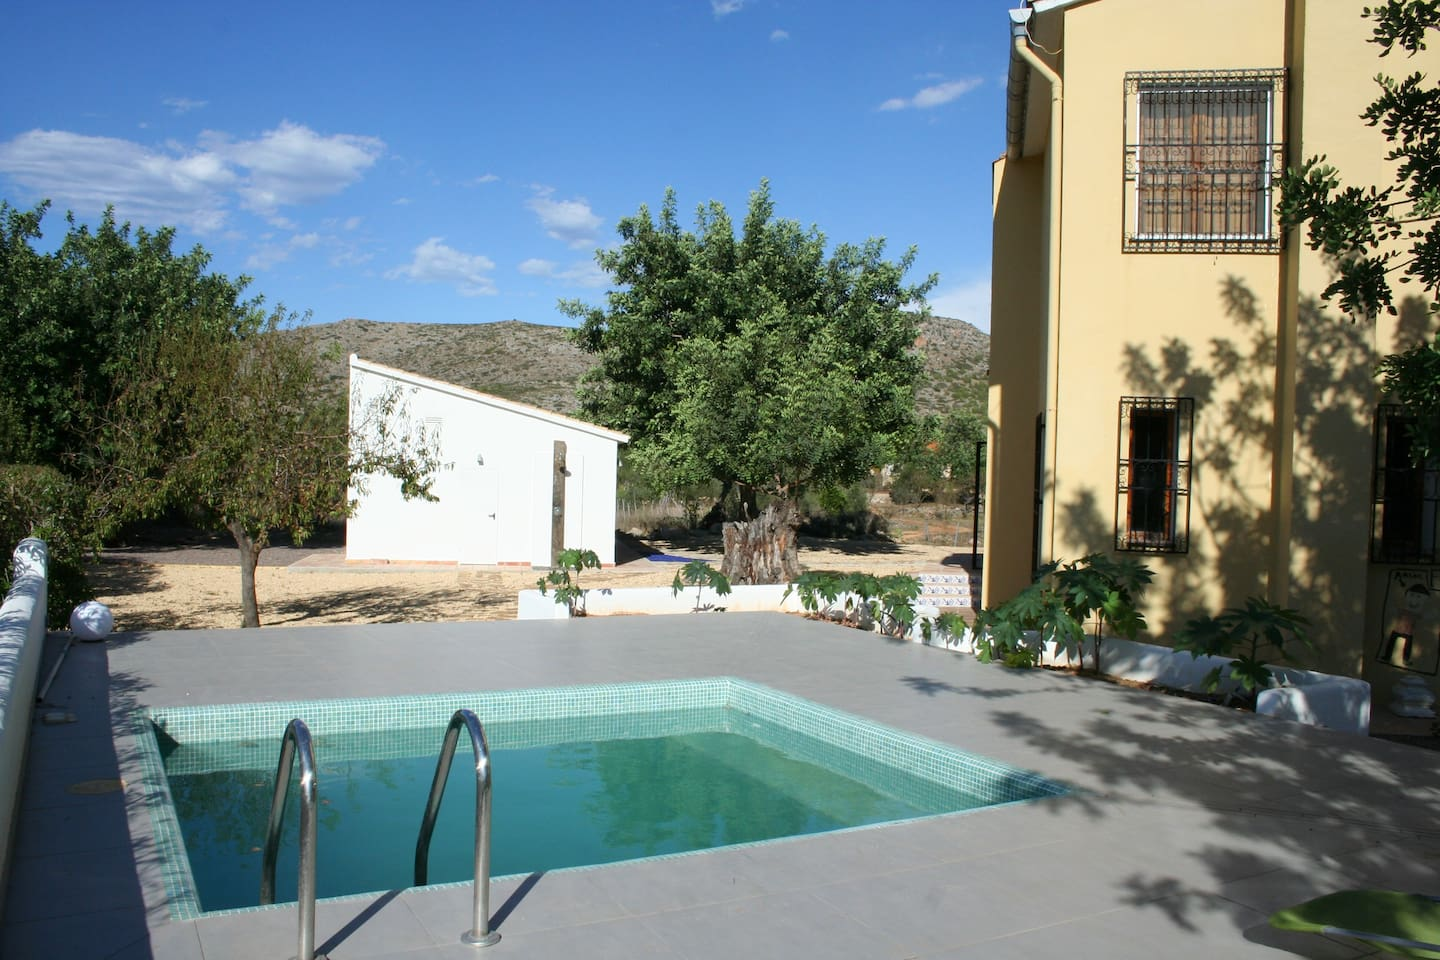 The pool area with the yoga studio behind and the house on the right